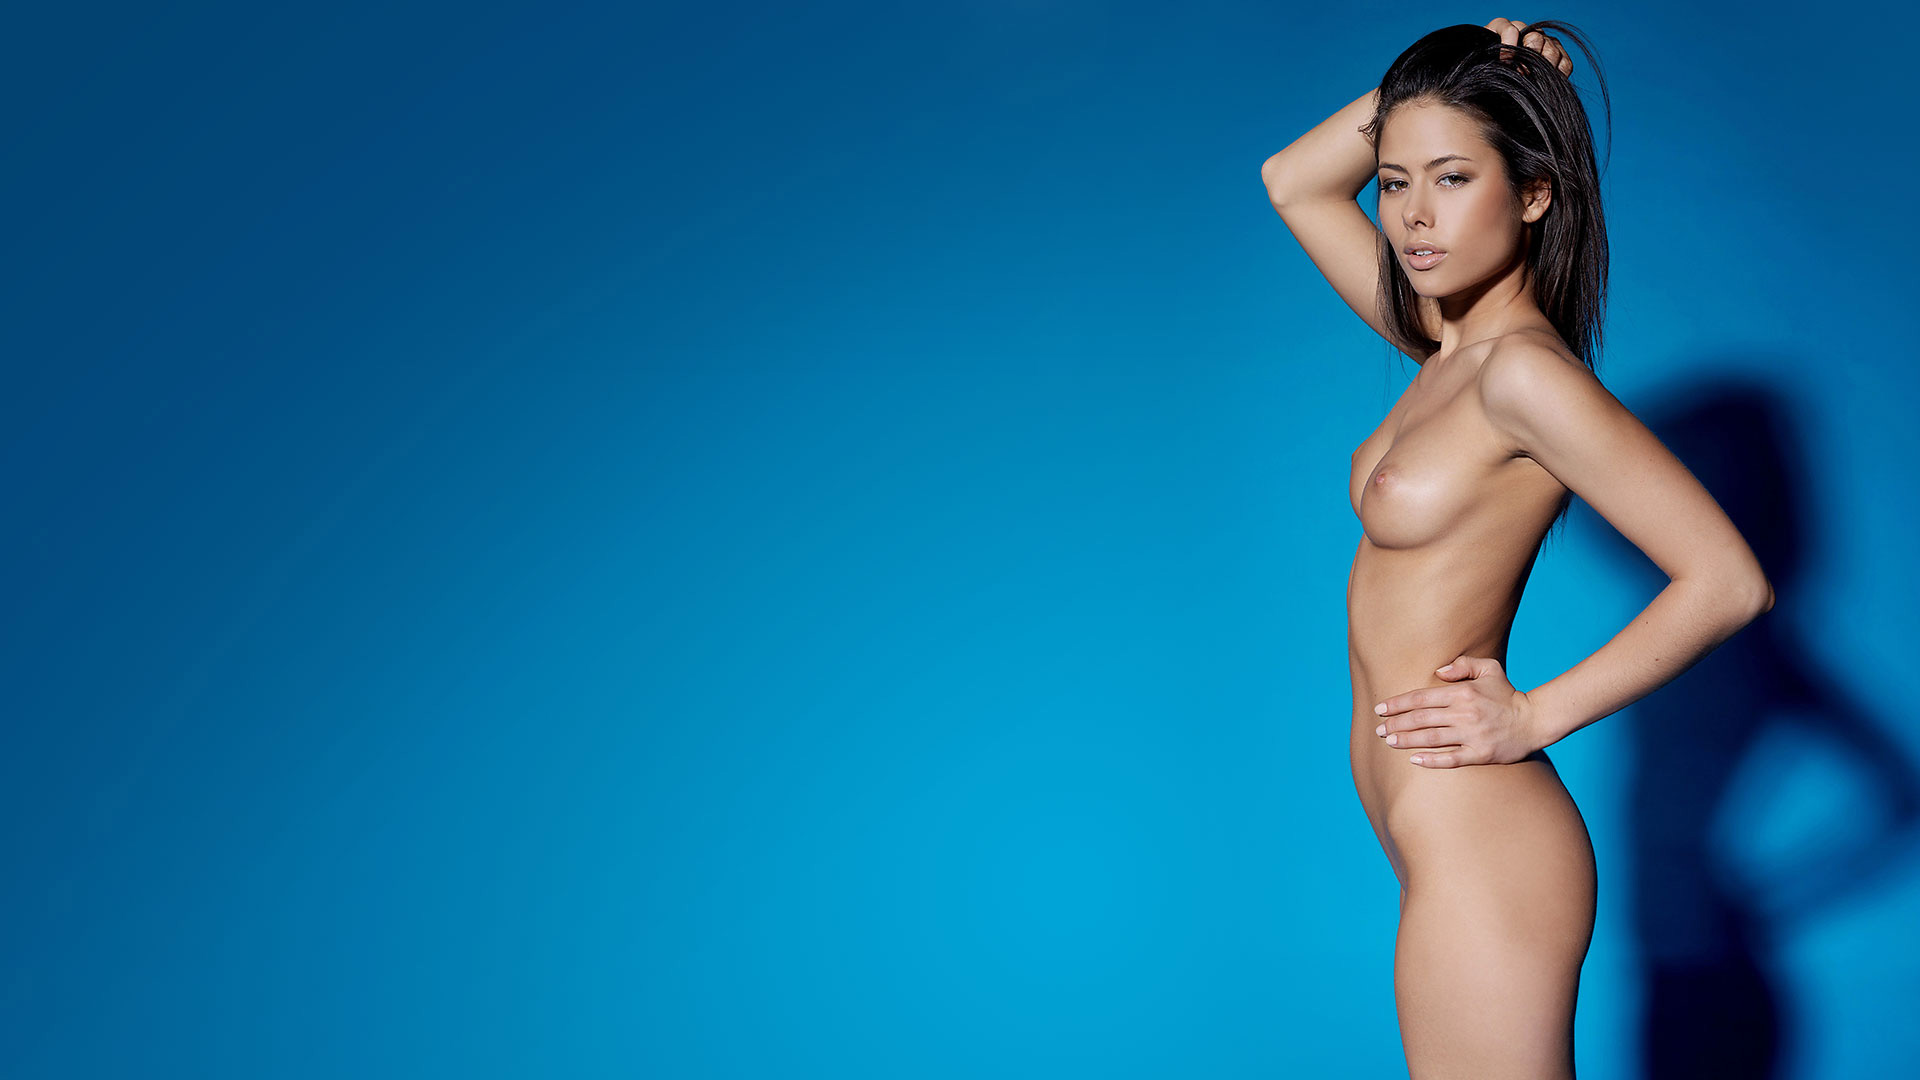 Download free wallpaper of sexy girl and  sex photo